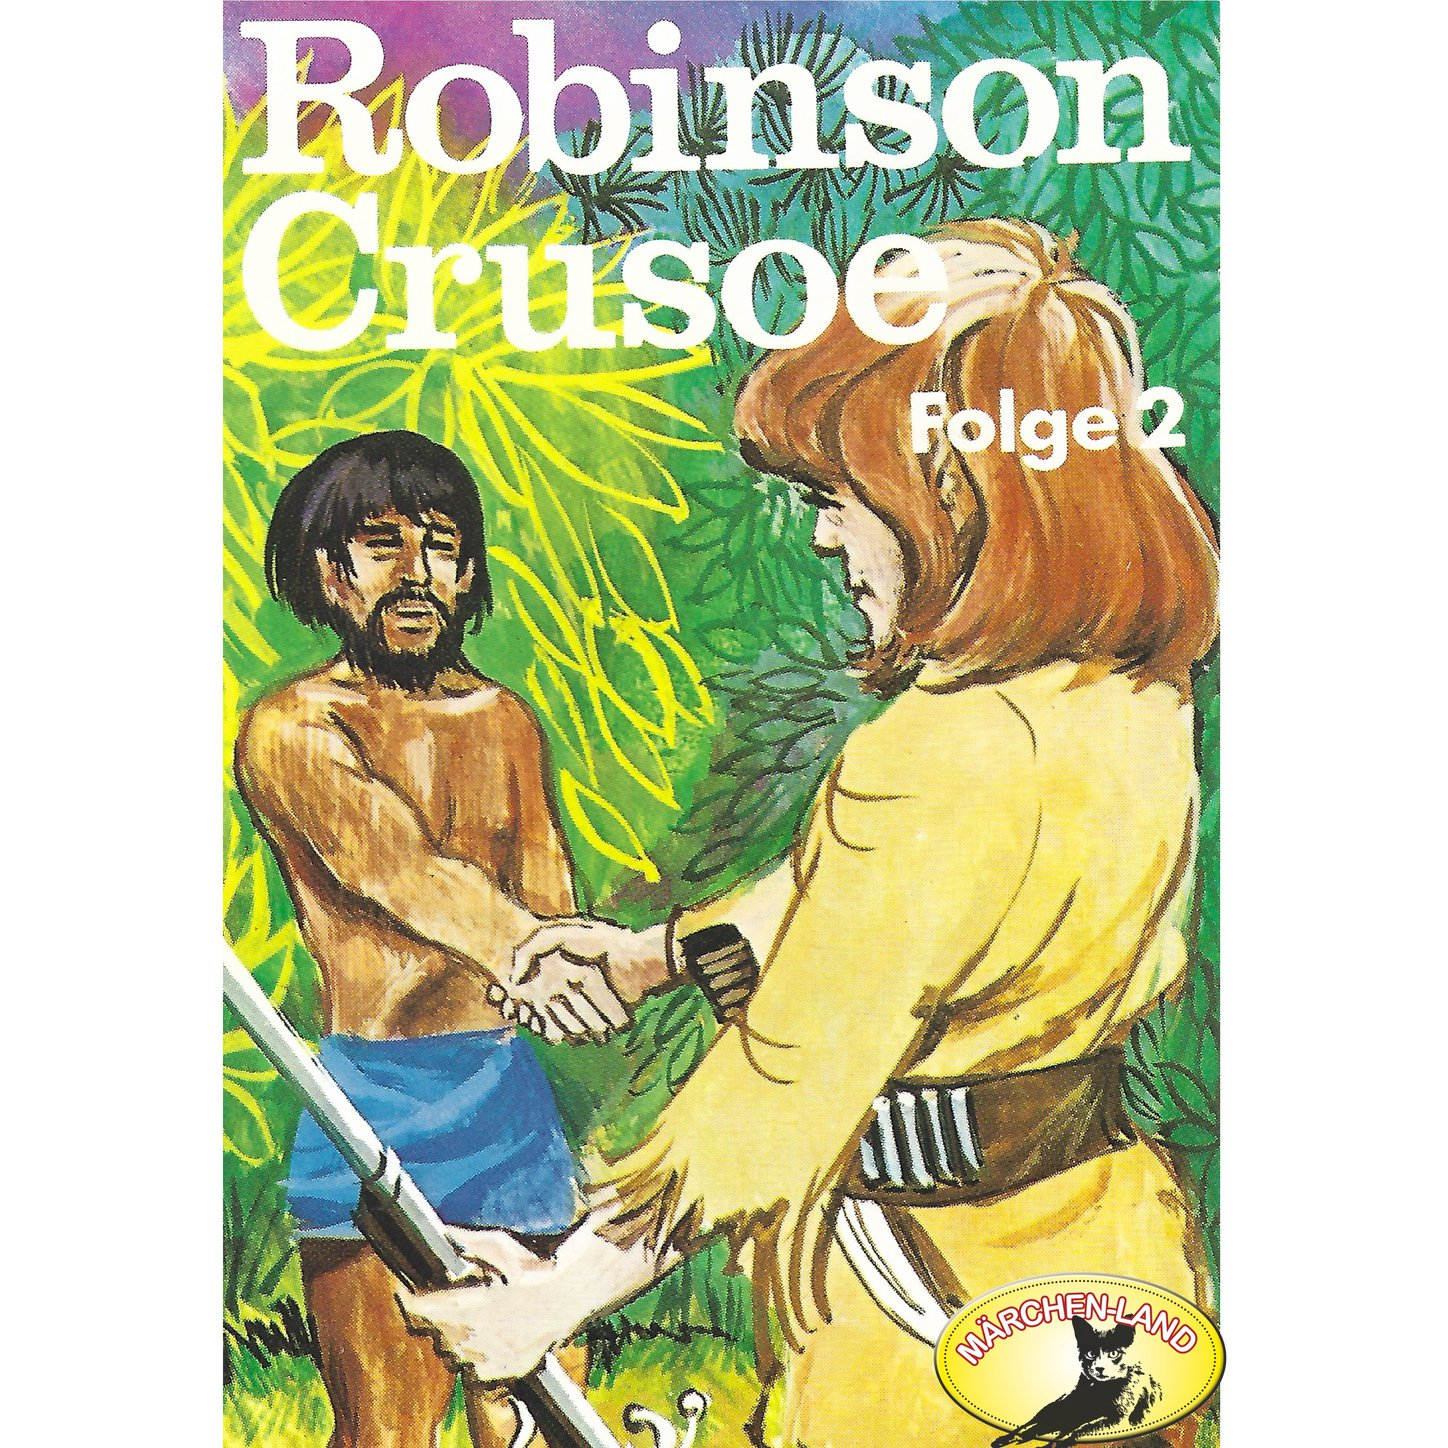 Daniel Defoe Robinson Crusoe - Daniel Defoe, Folge 2: Robinson Crusoe daniel defoe the life and aventures of robinson crusoe to which is prefixed a biographical memoir of daniel de foe volume 3